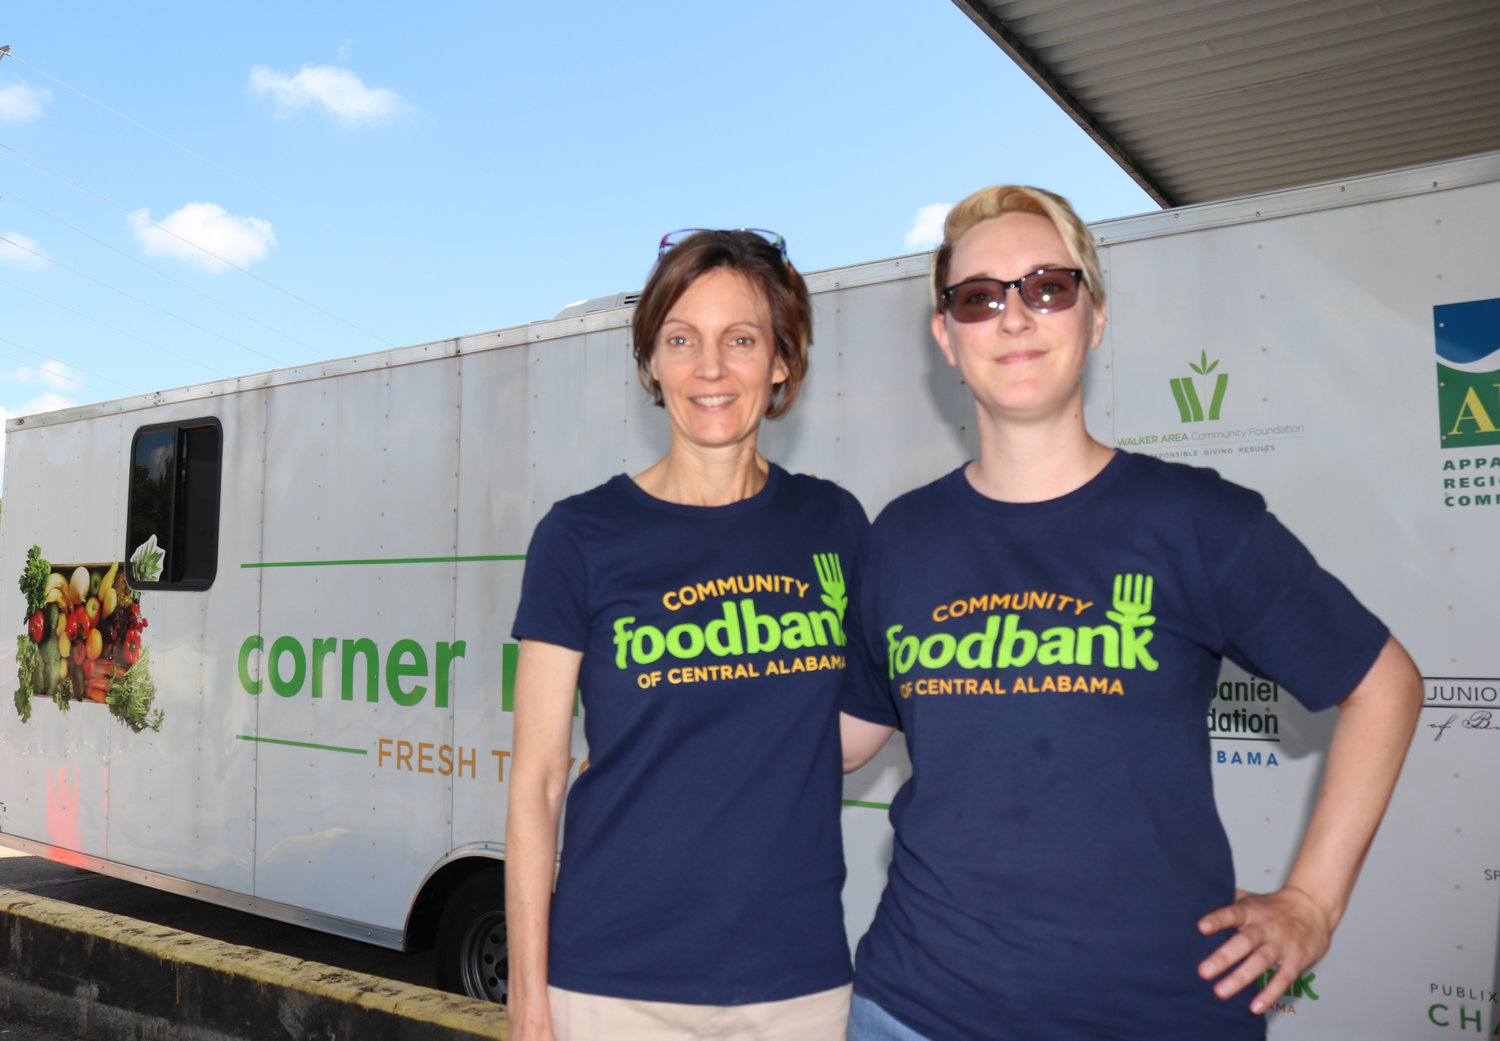 Kathryn Strickland and Jules Bailey work with the Corner Market mobile grocery story to bring healthy food choices to communities in Dora and Oakman.